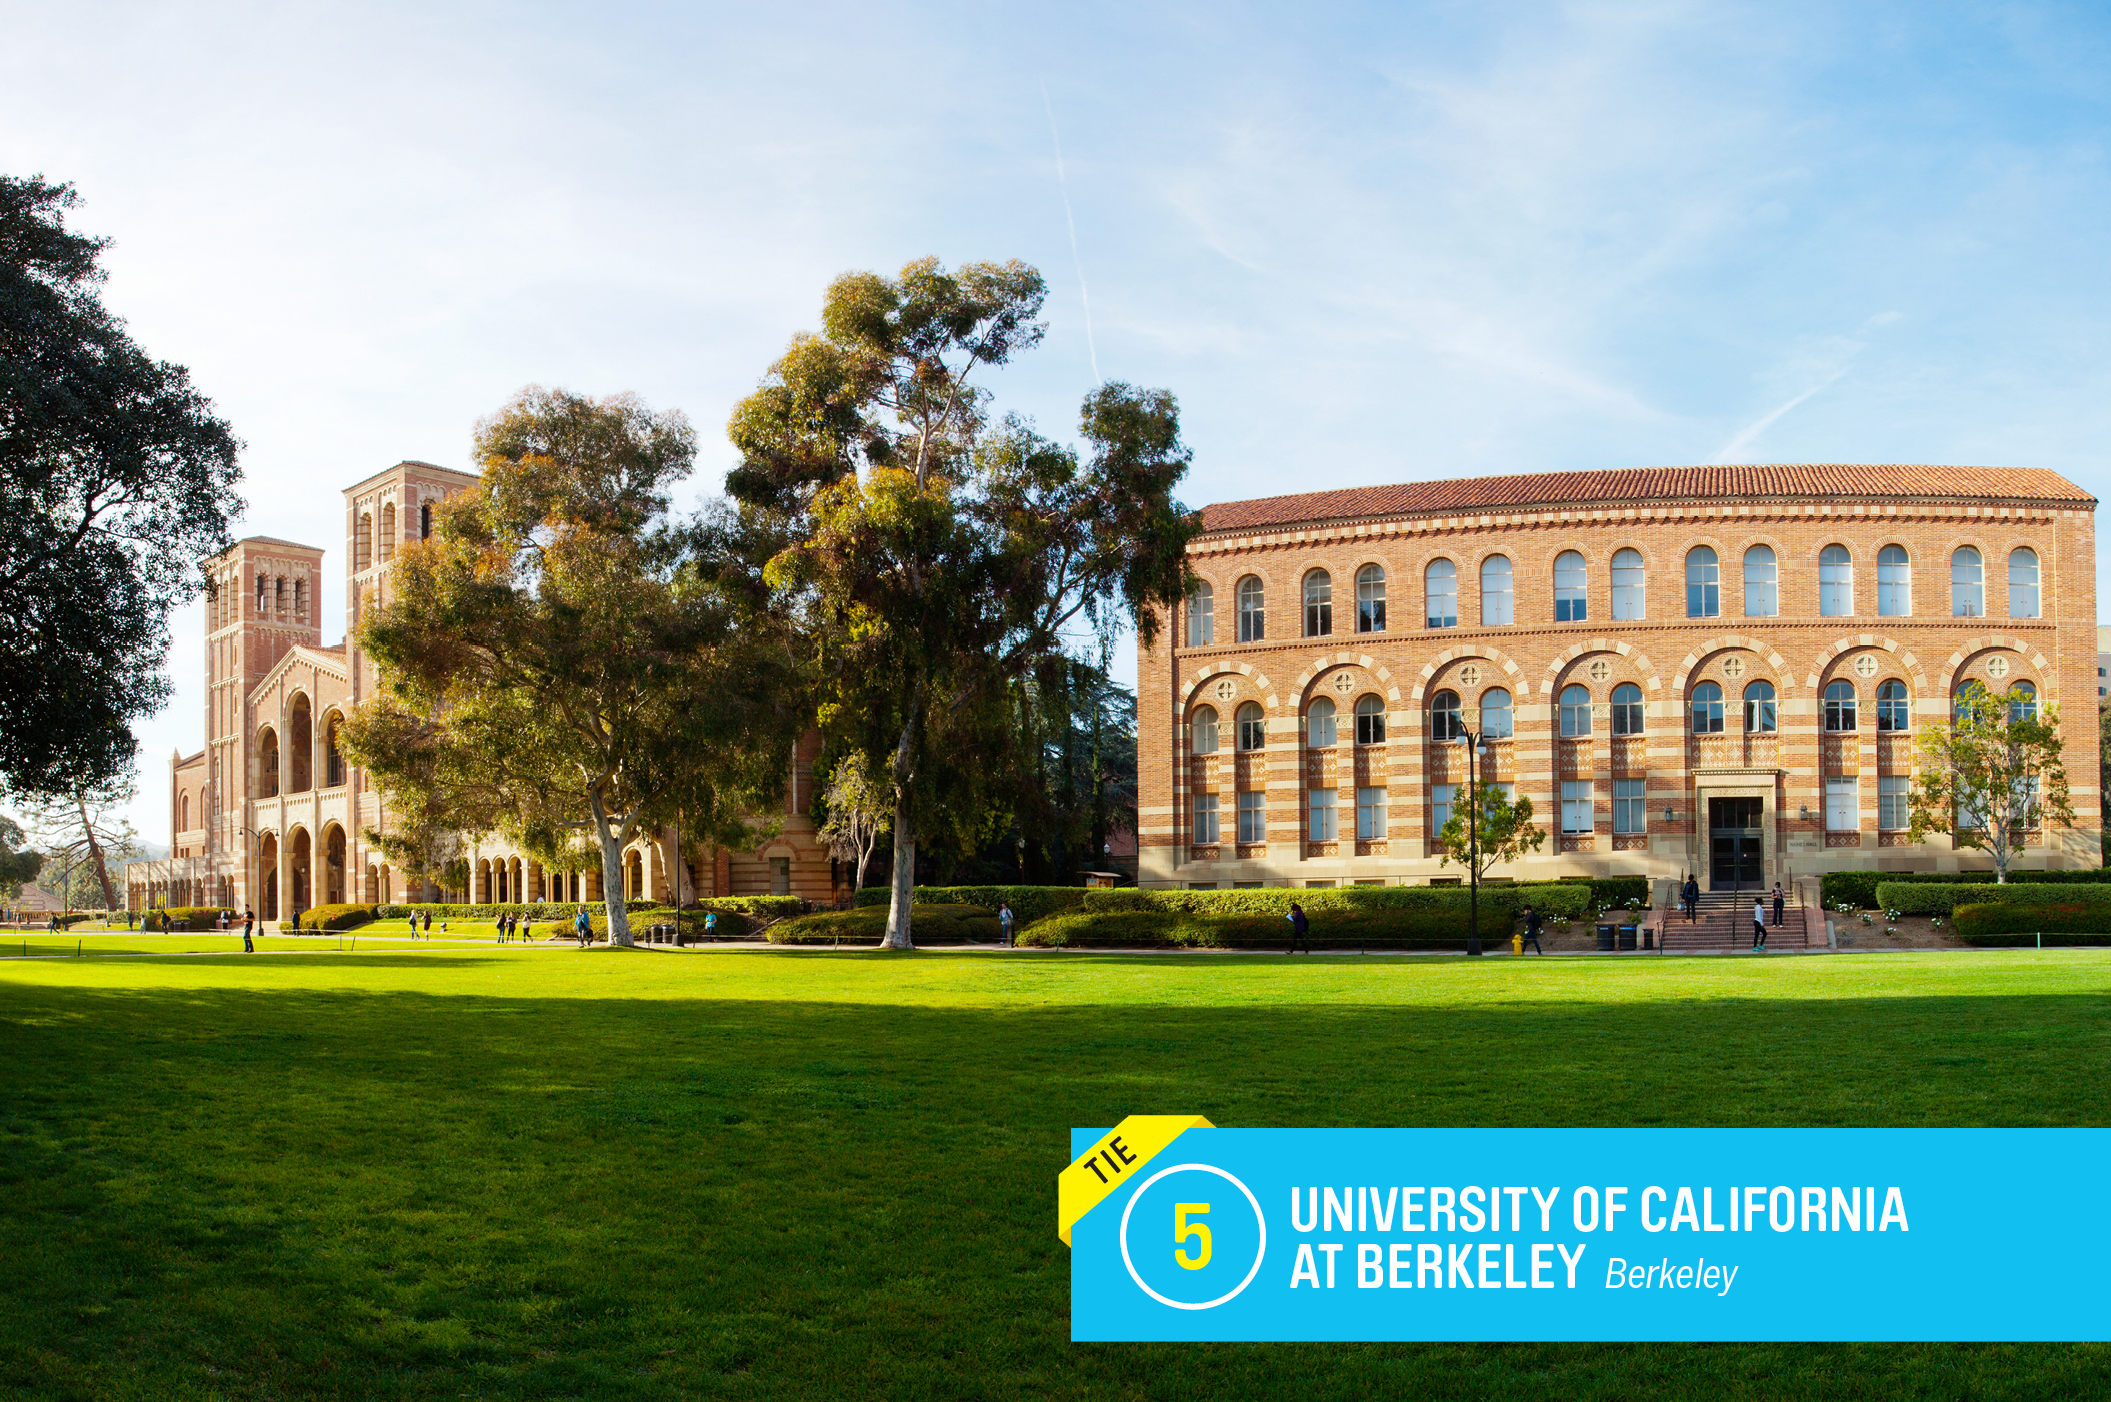 "<a href=""https://money.com/best-colleges/profile/university-of-california-berkeley/"" target=""_blank"">UC-Berkeley</a>, or Cal for short, ranks the highest of eight University of California system schools that made Money's rankings. In fact, Cal is one of the most selective public colleges in the country. More than 90% of freshmen graduate within six years, a rate well above even other elite public universities.                                       <a href=""https://money.com/best-colleges/profile/university-of-california-berkeley/"" target=""_blank"">FULL PROFILE</a>"